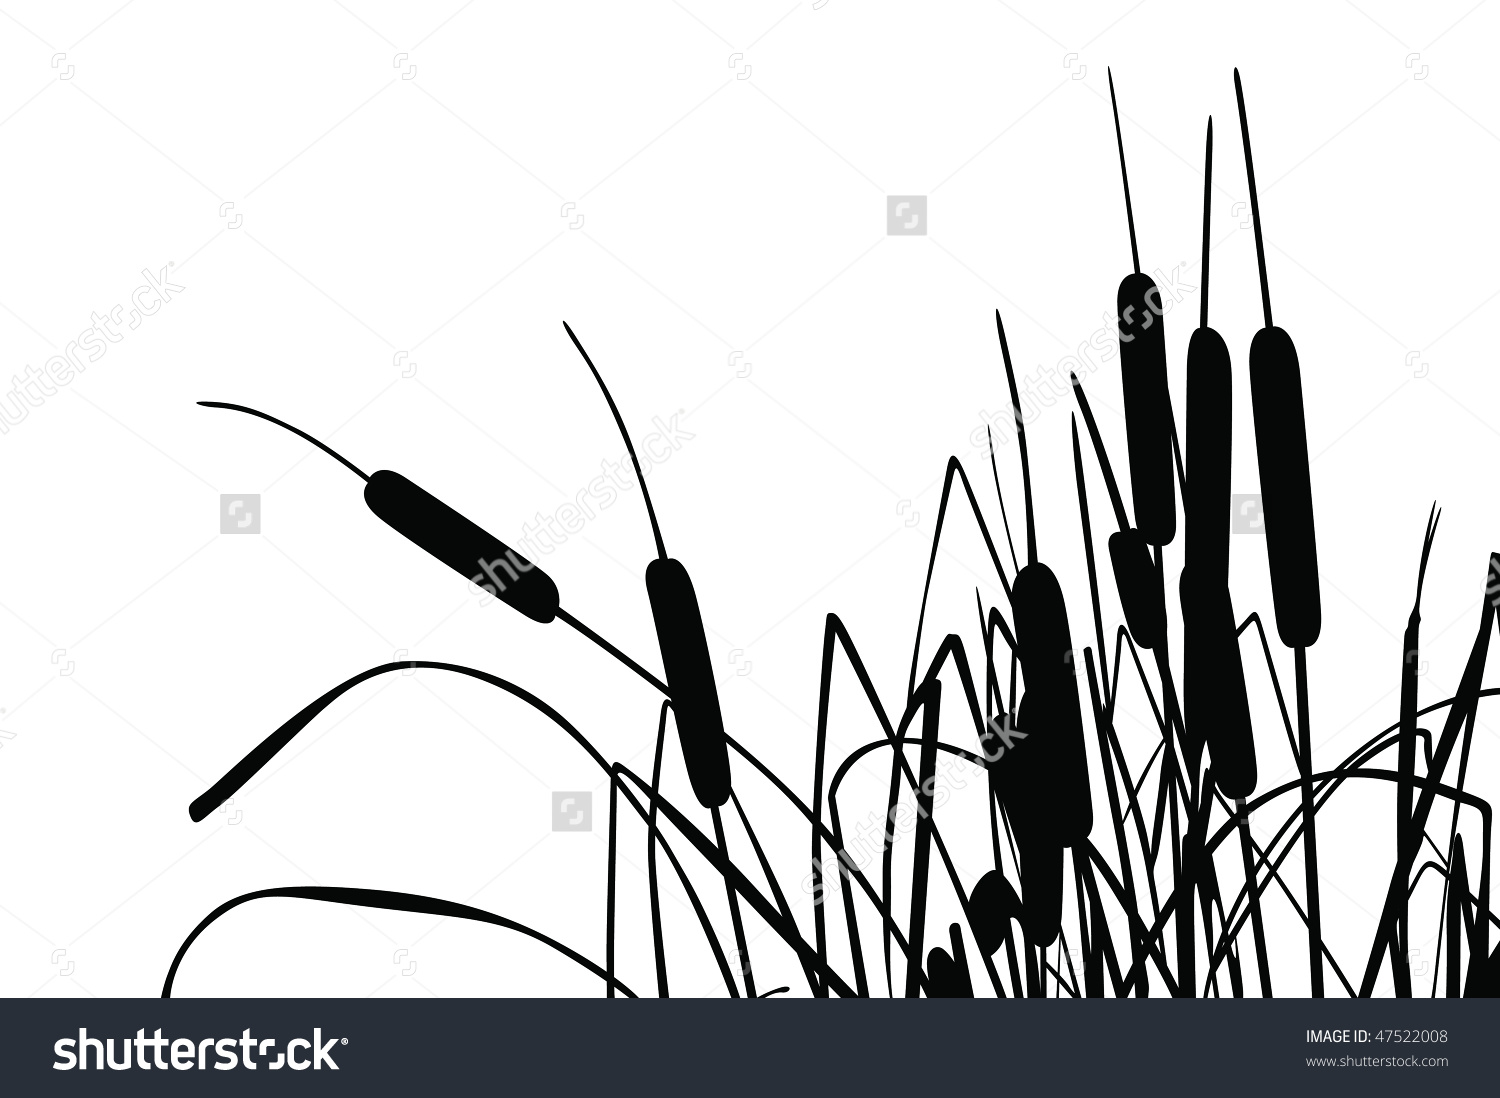 Cattail clipart black and white.